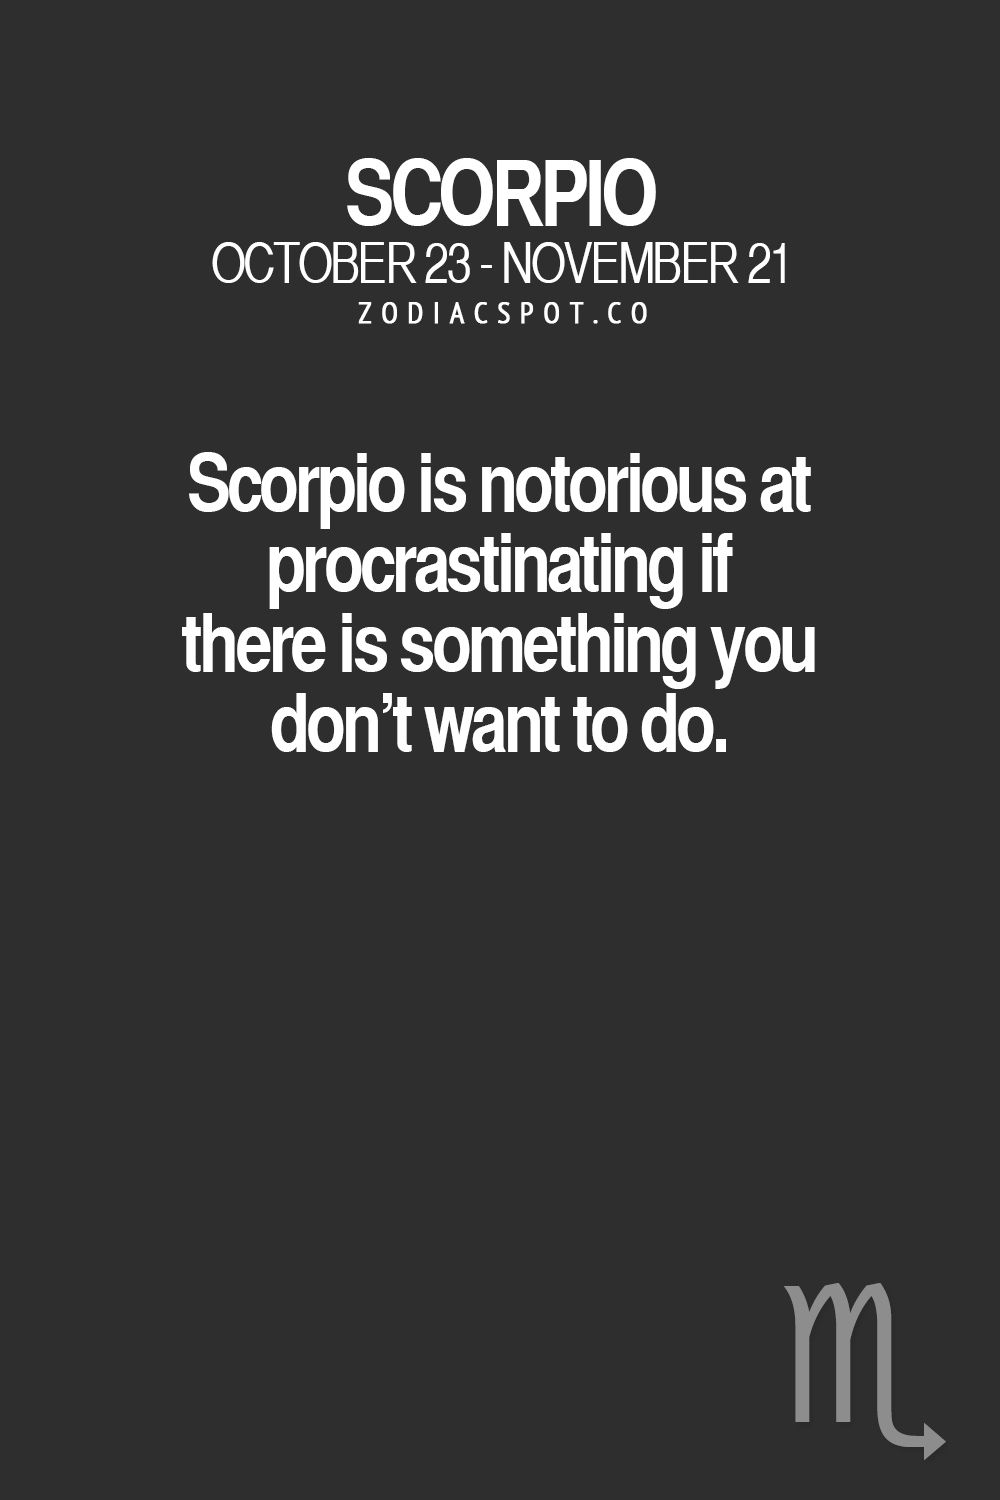 ZodiacSpot - Your all-in-one source for Astrology | Zodiac | Scorpio